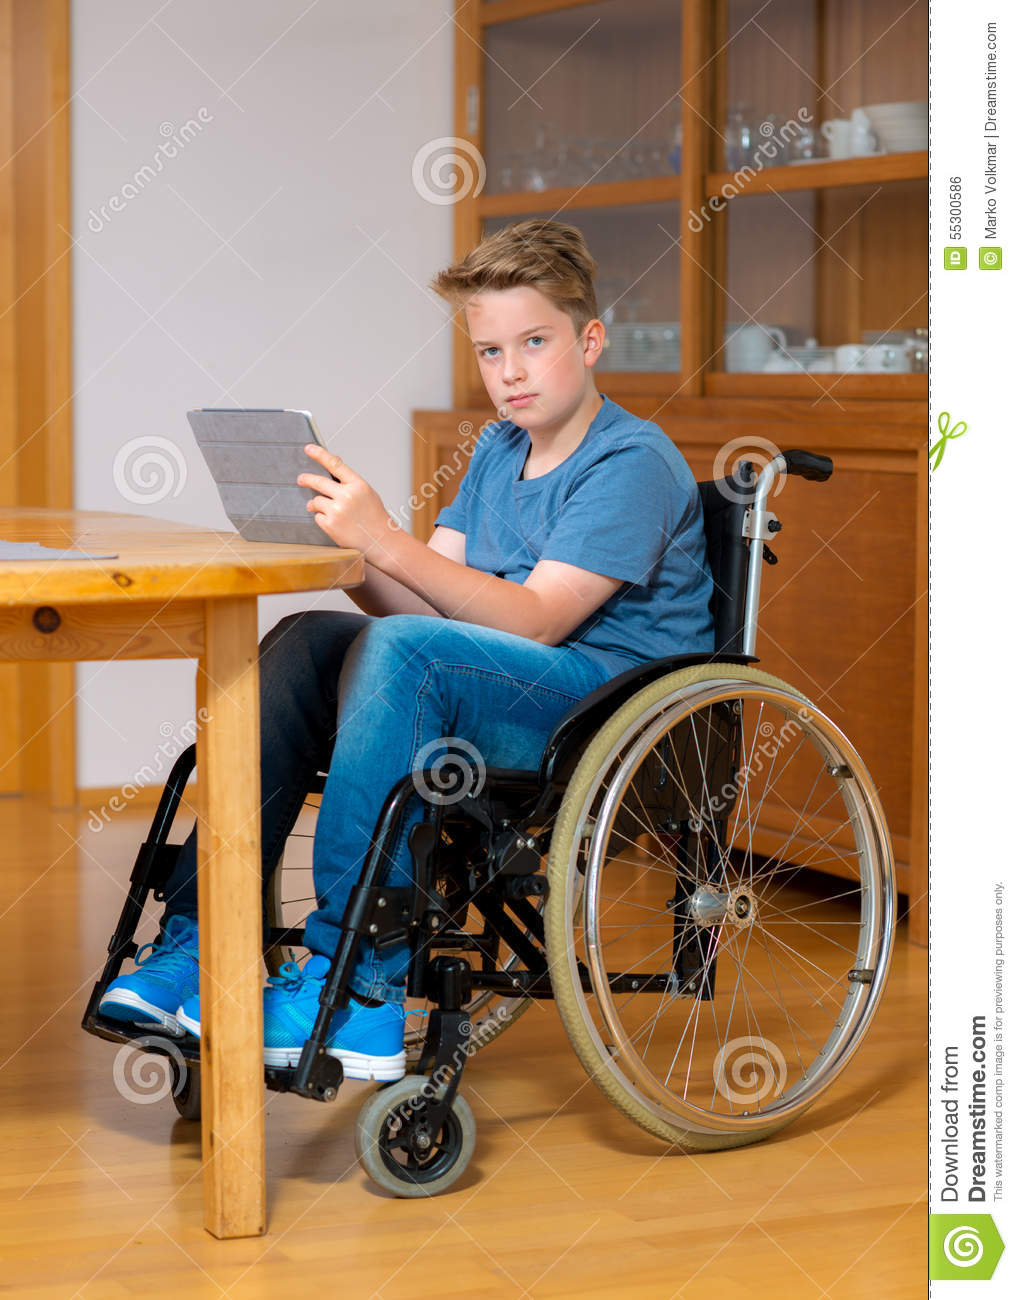 Nude boys in wheel chairs #12